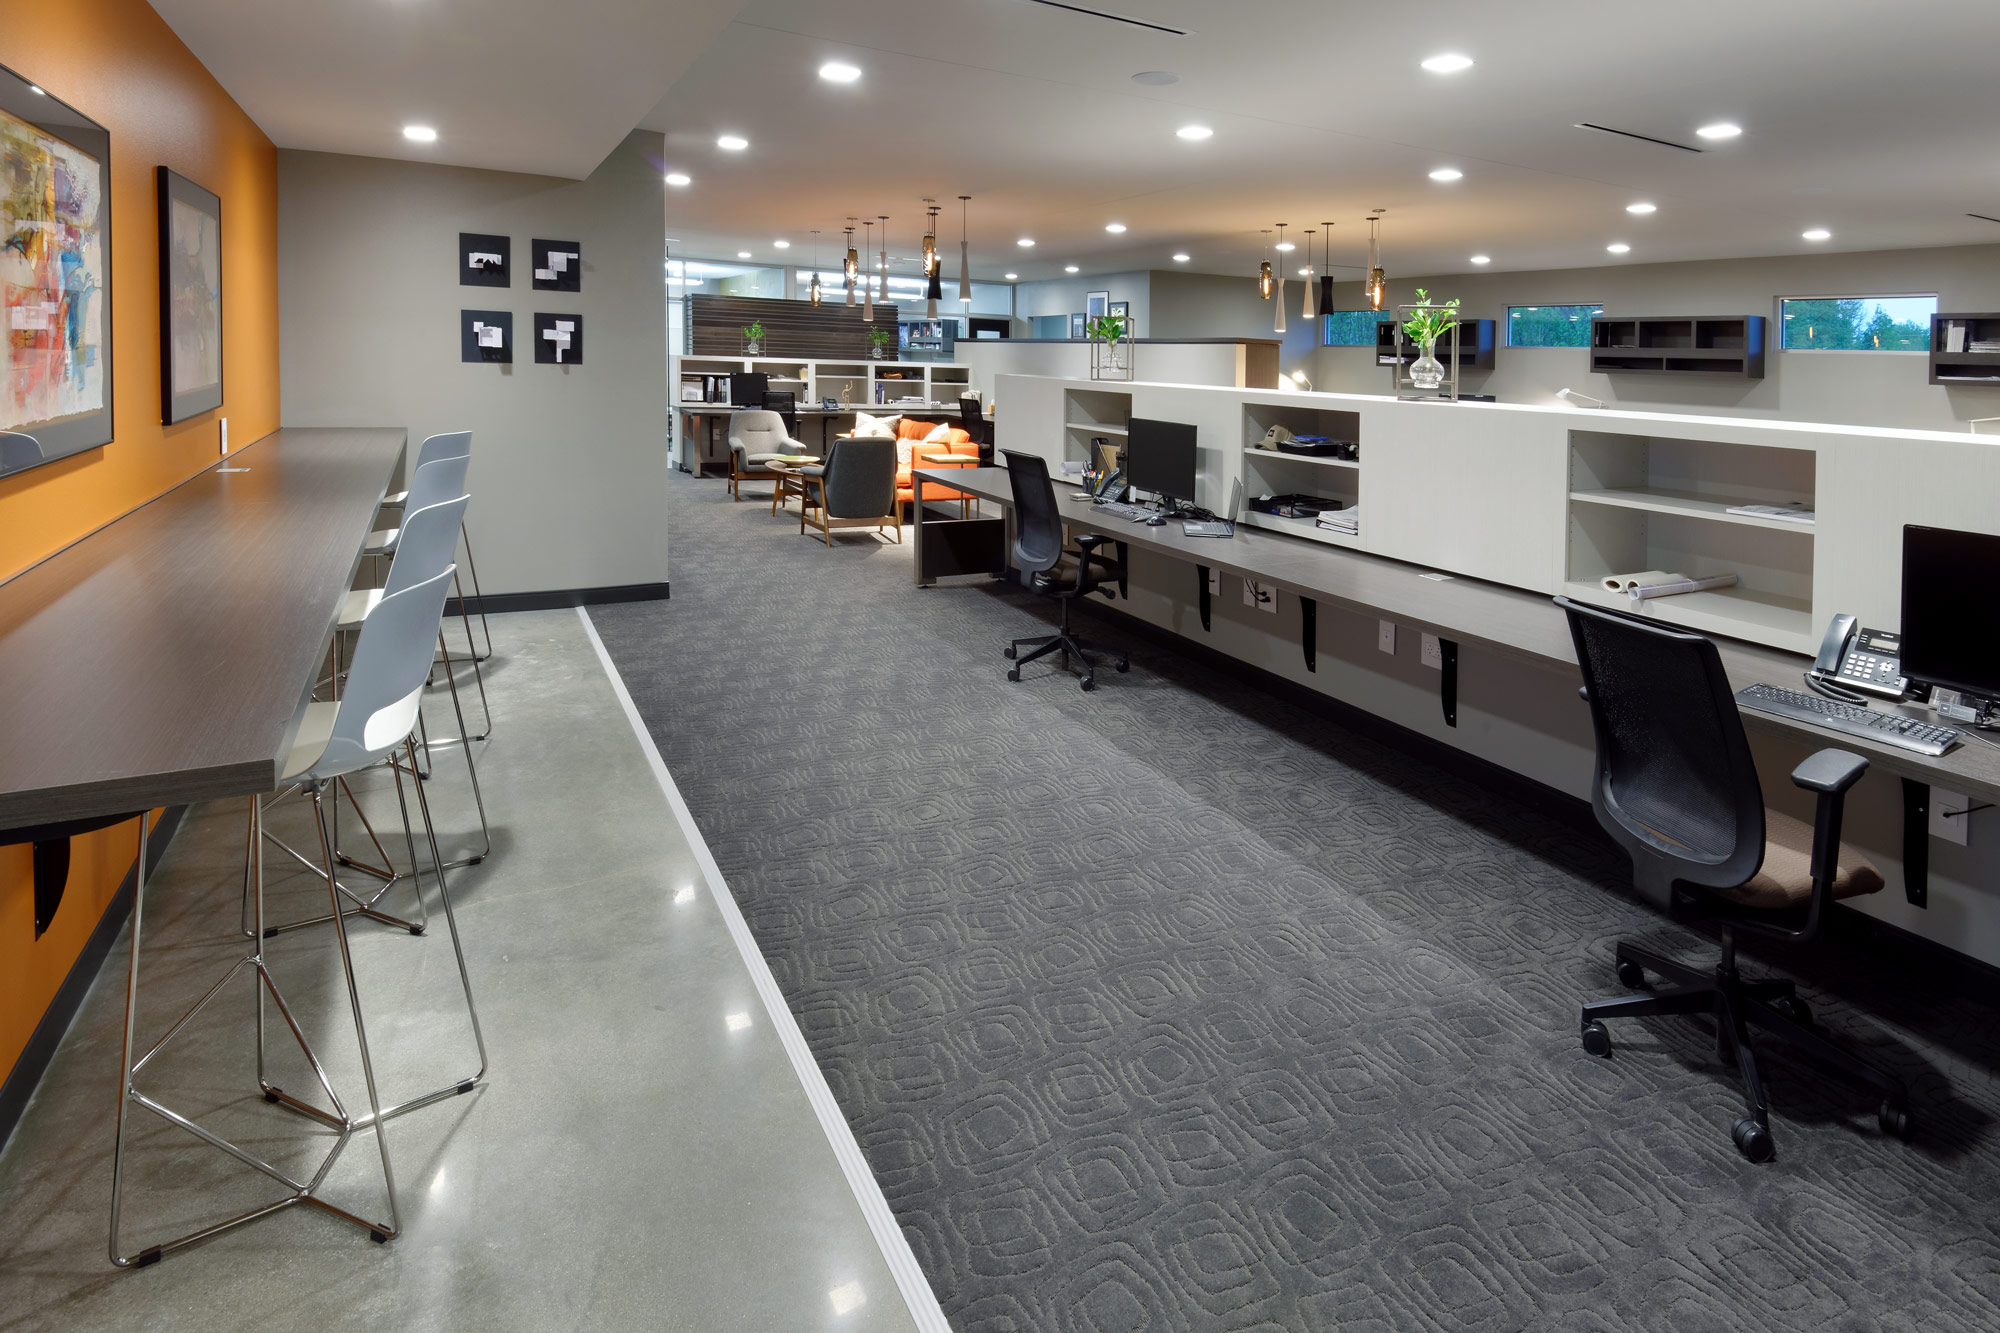 H-Design-Office-Interior-04.jpg